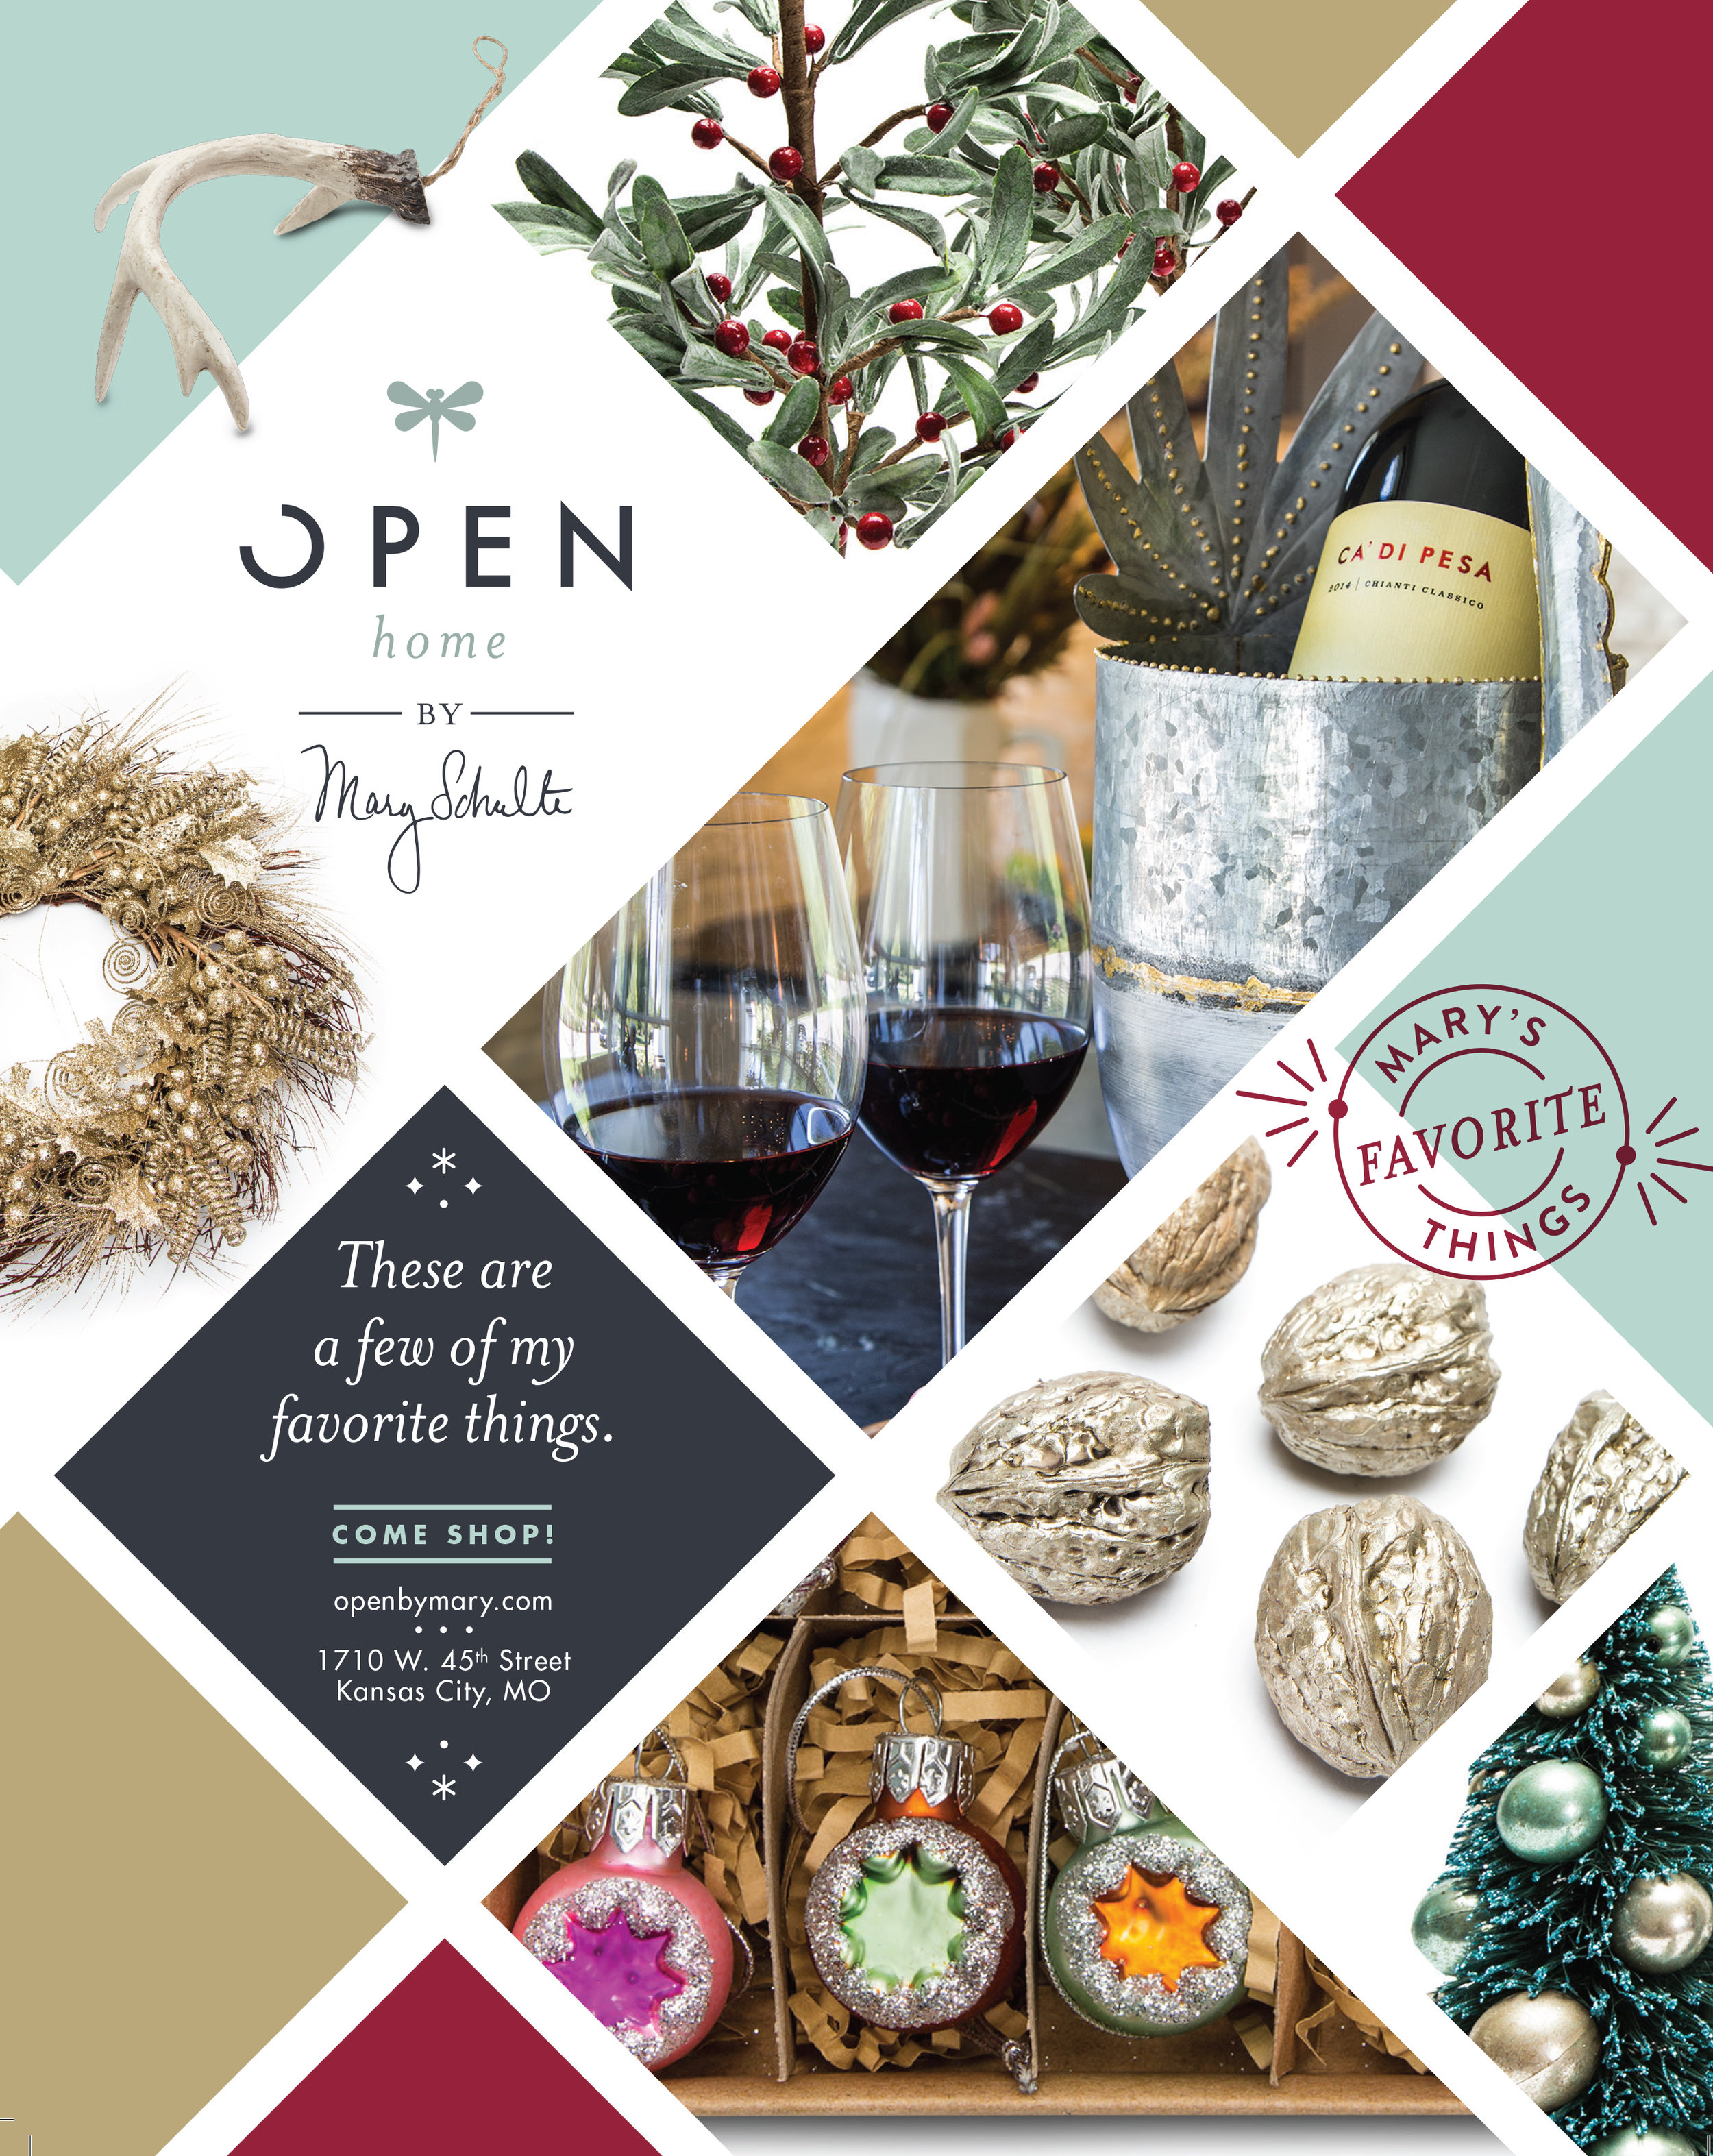 OpenAd-TheHills-FullPage-Grid-Holiday2017.jpg